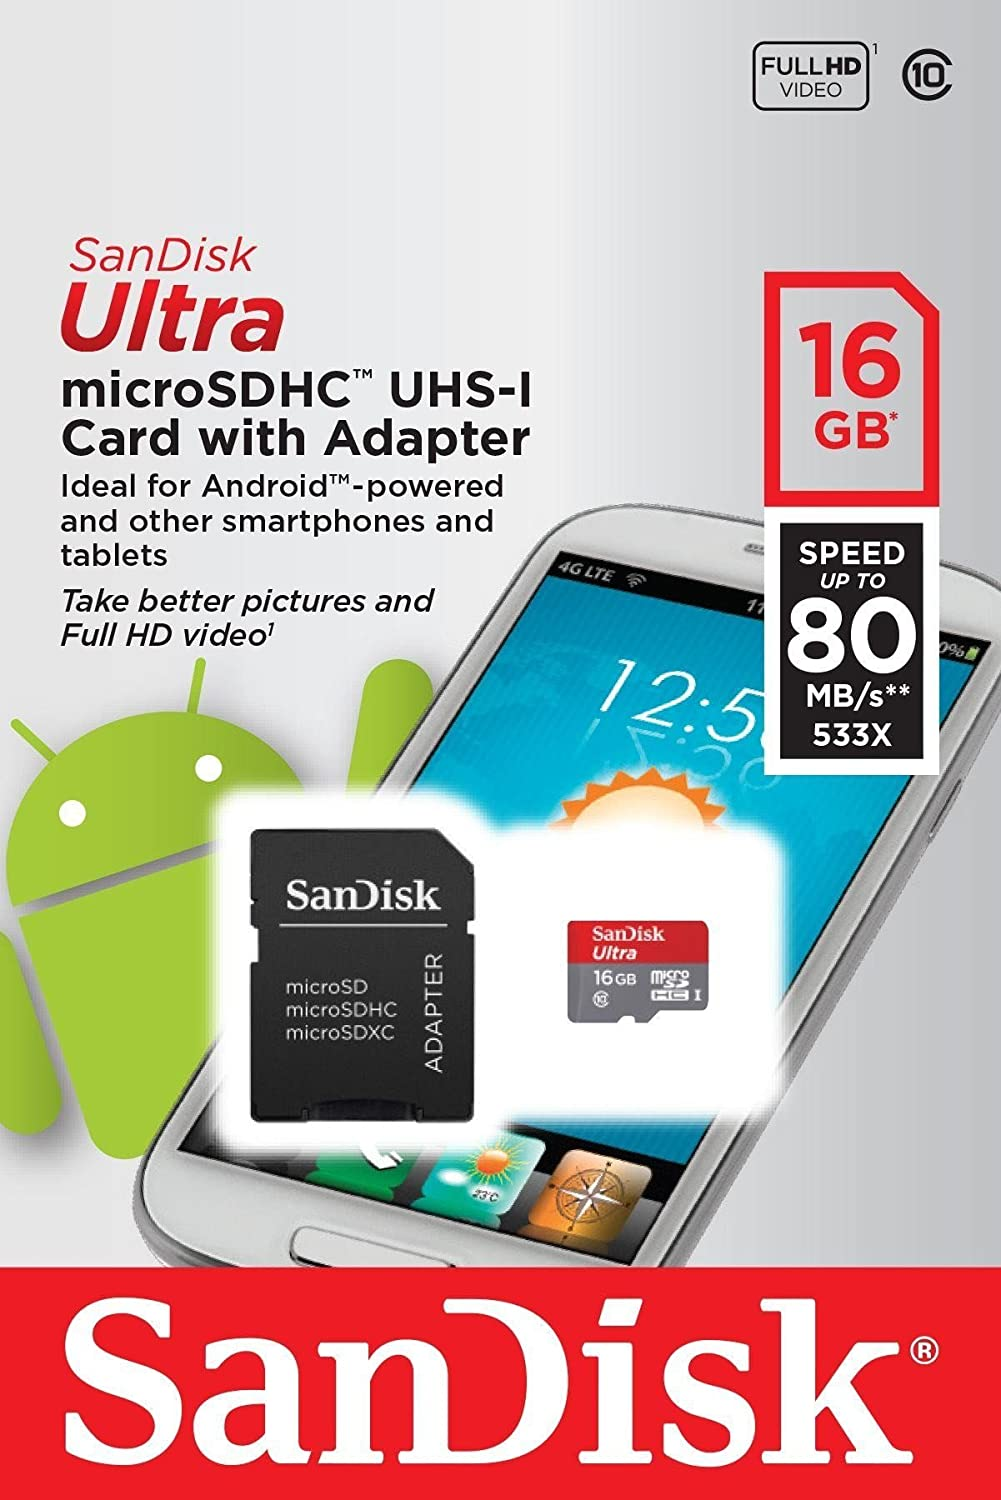 Includes Standard SD Adapter. Lossless Format Professional Ultra SanDisk 32GB verified for Samsung GT-S7390 MicroSDHC card with CUSTOM Hi-Speed UHS-1 A1 Class 10 Certified 98MB//s